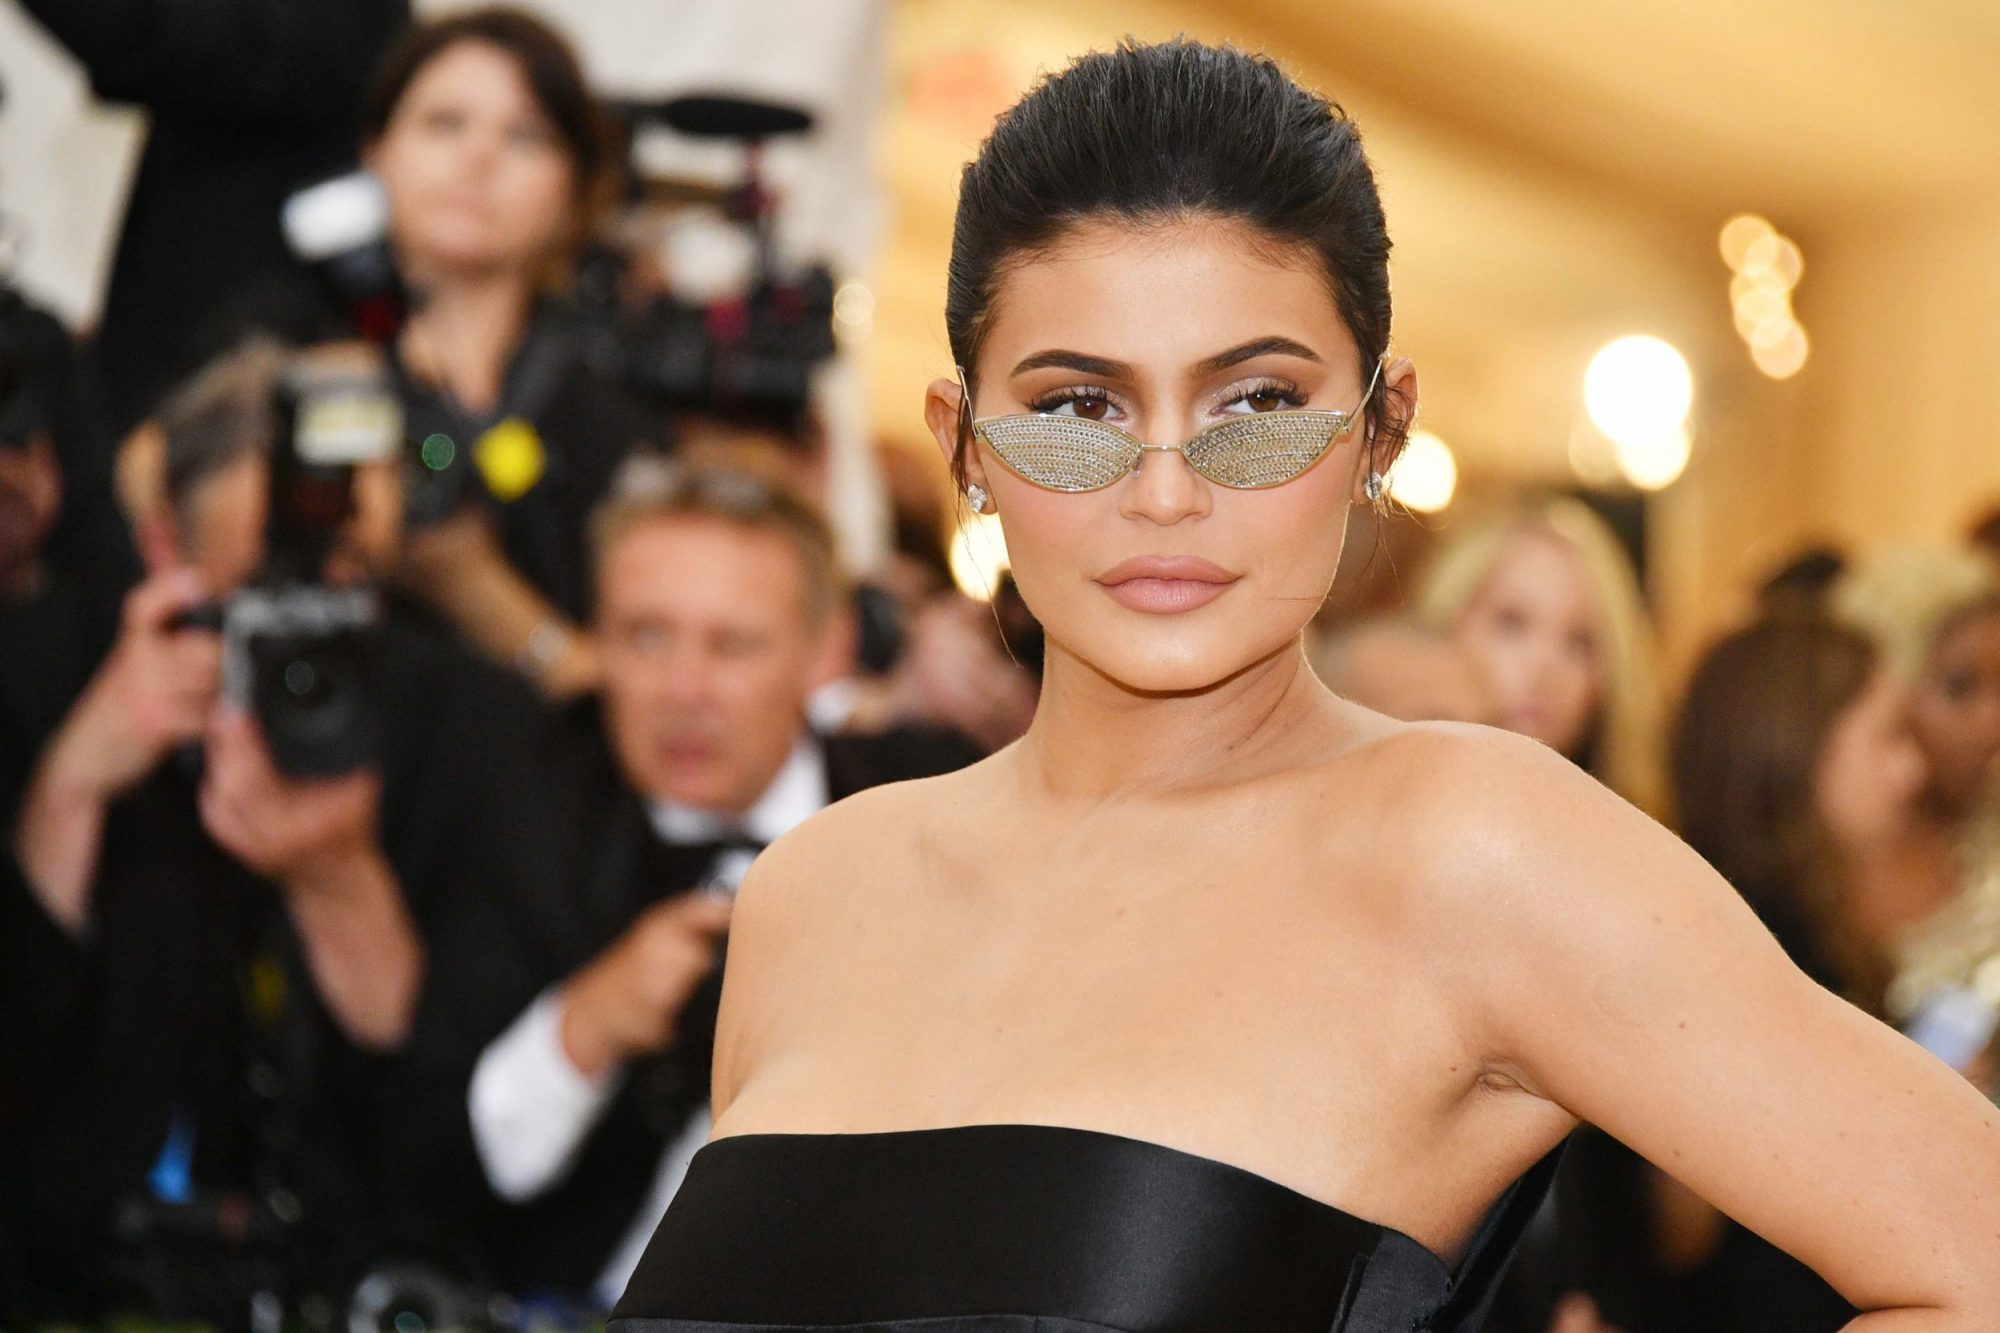 Photo of Kylie Jenner at the 2018 Met Gala